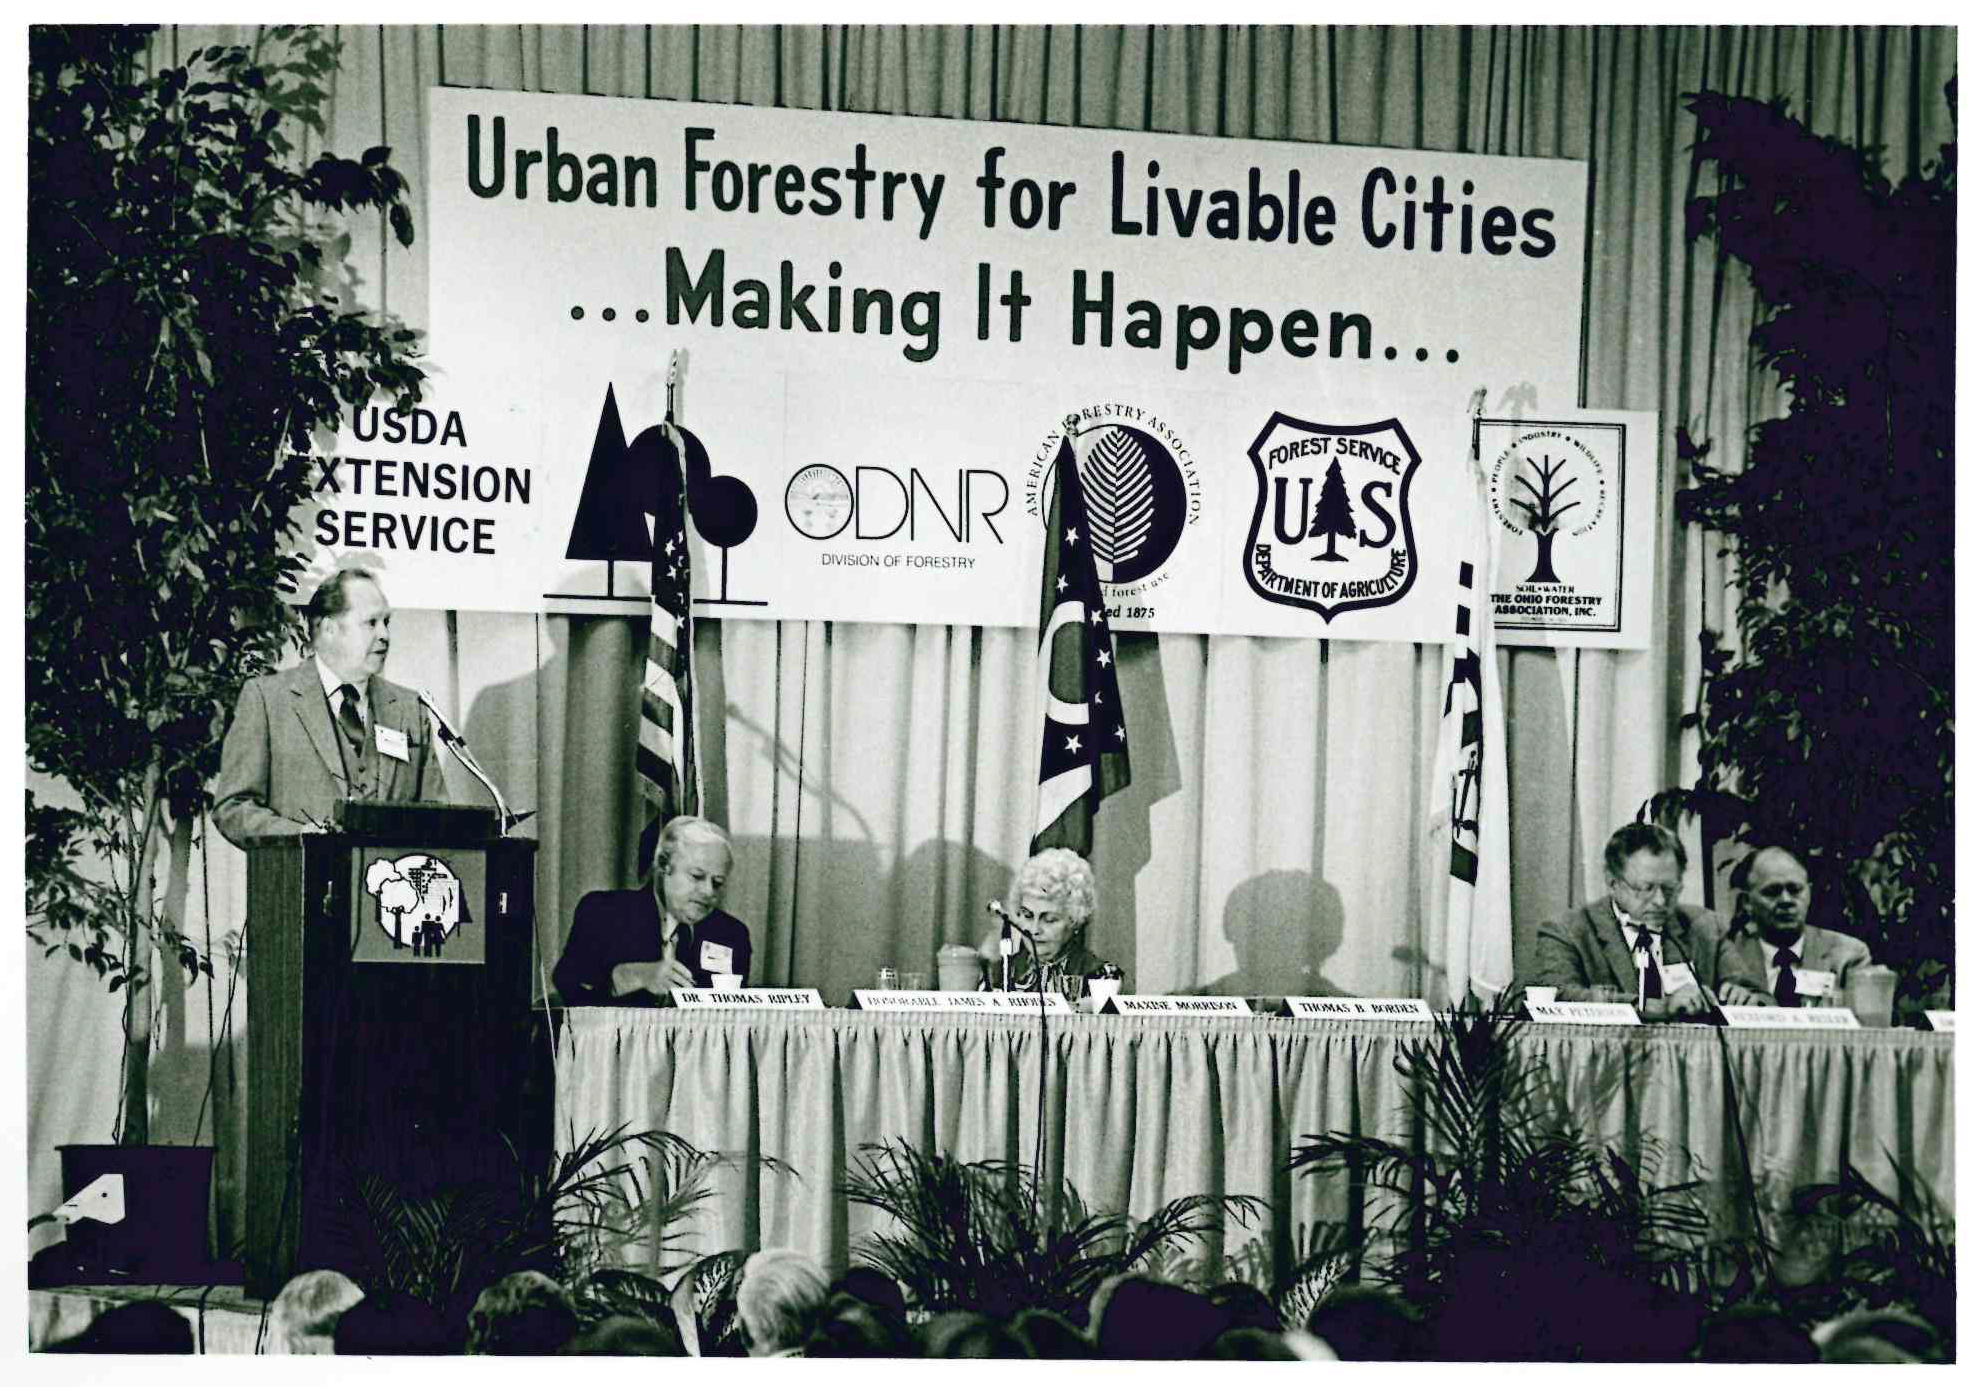 : In 1978, American Forests helped establish the urban forestry concept, rapidly becoming a catalyst for urban forestry. We were instrumental in establishing the National Urban and Community Forestry Leaders Council in 1981, later to be called the National Urban Forest Council. This is a photo of the proceedings of the second national urban forestry conference in 1982.